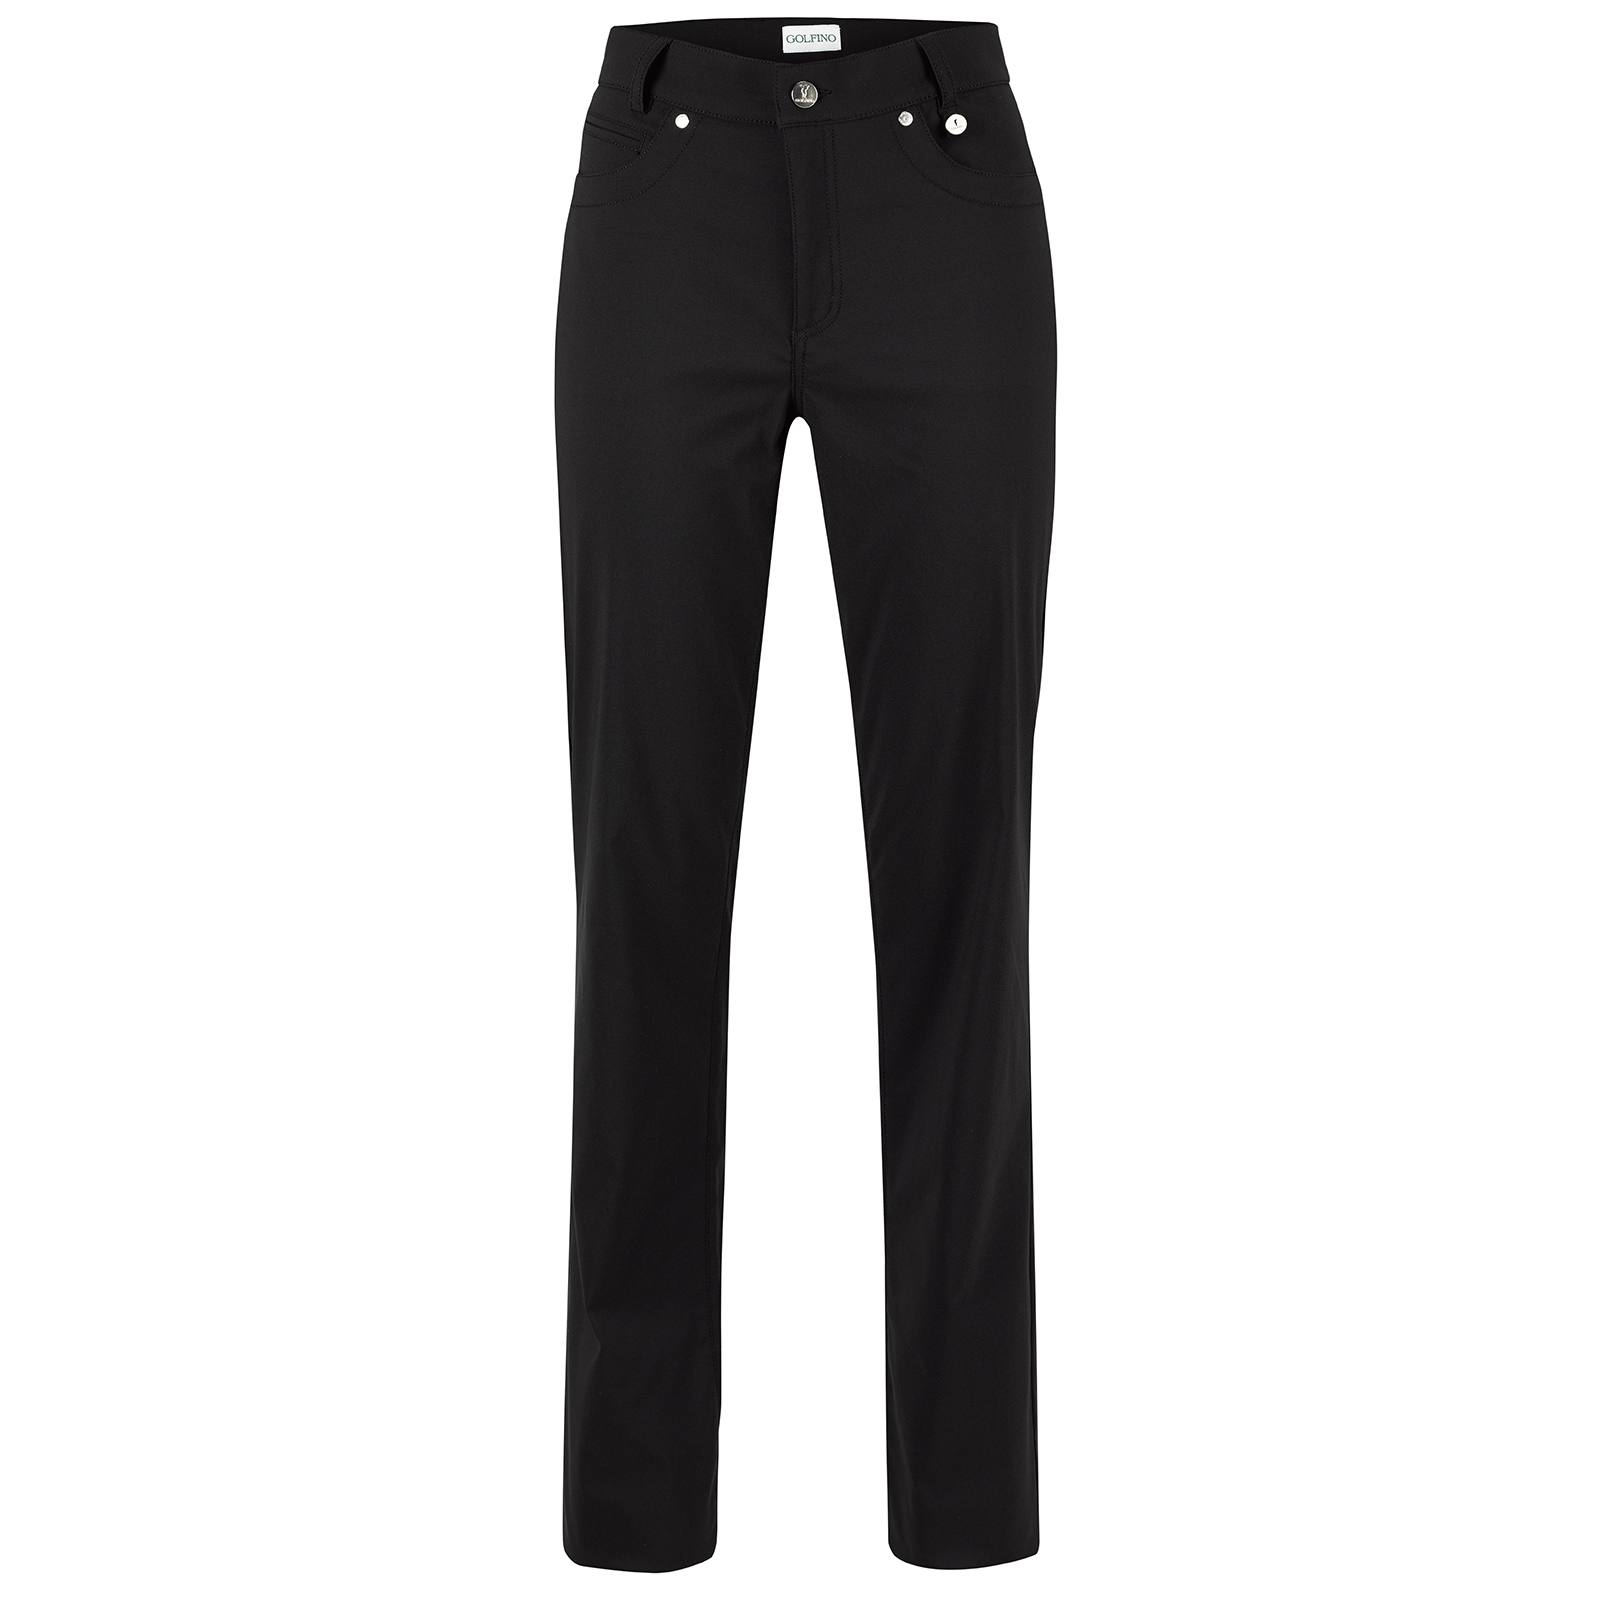 Water-resistant ladies' winter golf trousers with UV protection function